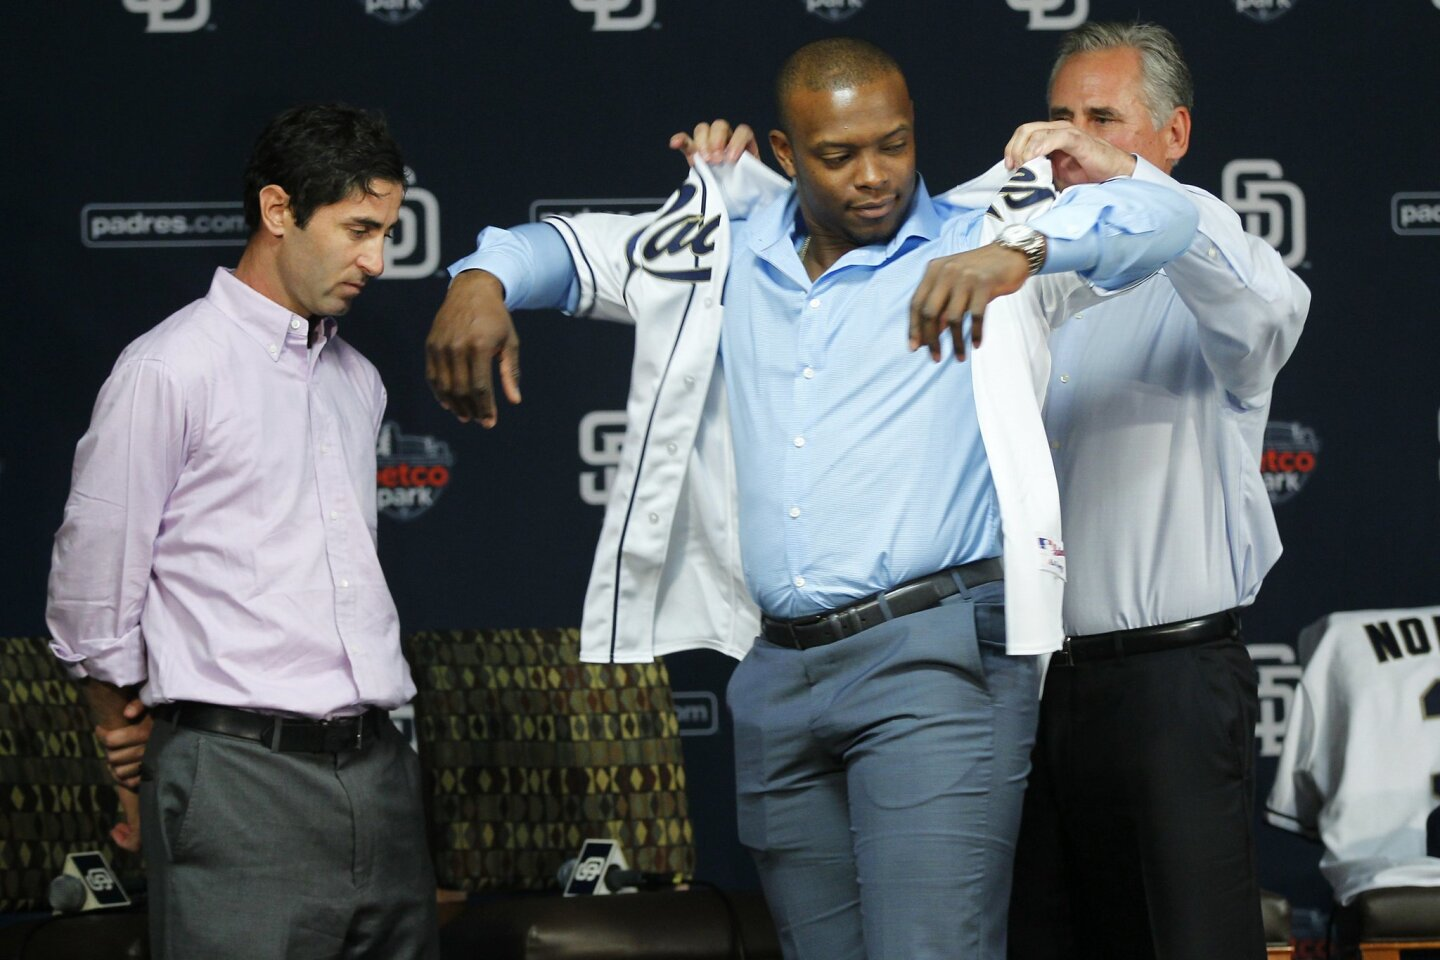 Padres General Manager A.J. Preller, watches as Manager Bud Black helps Justin Upton with his jersey at Petco Park.